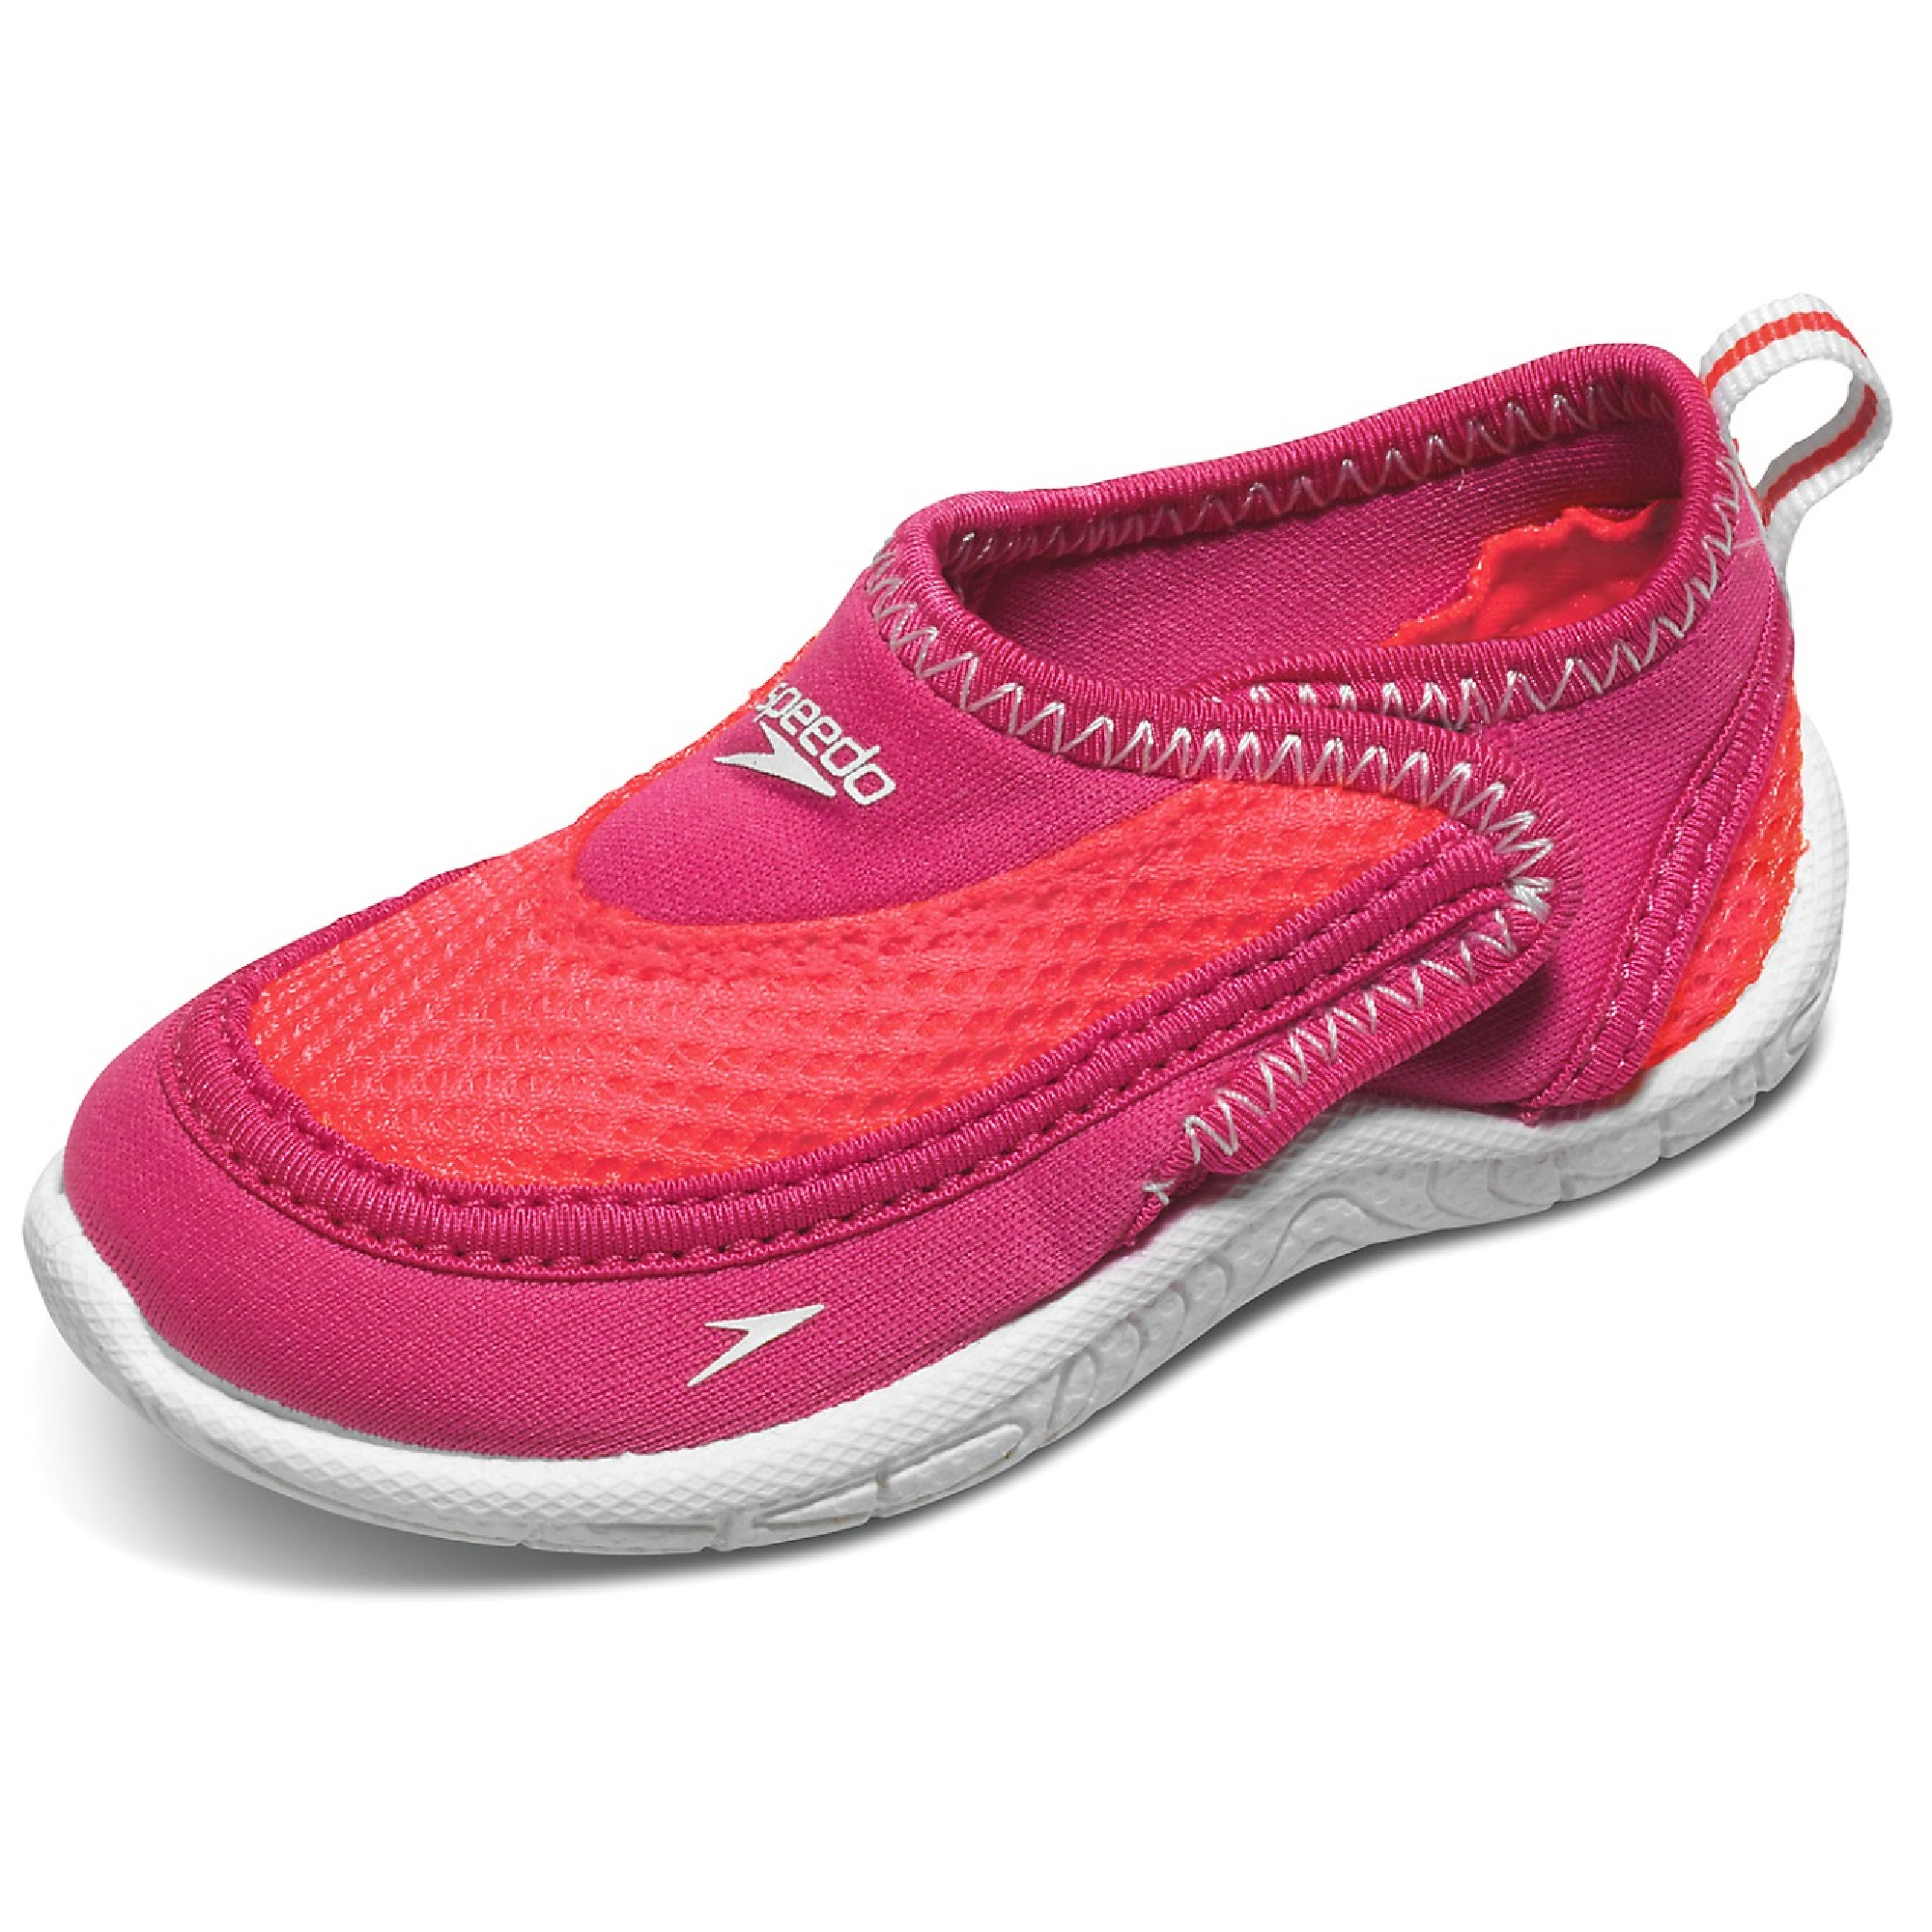 Speedo Toddler Surfwalker Water Shoes CHECK FOR COLOR AND SIZE